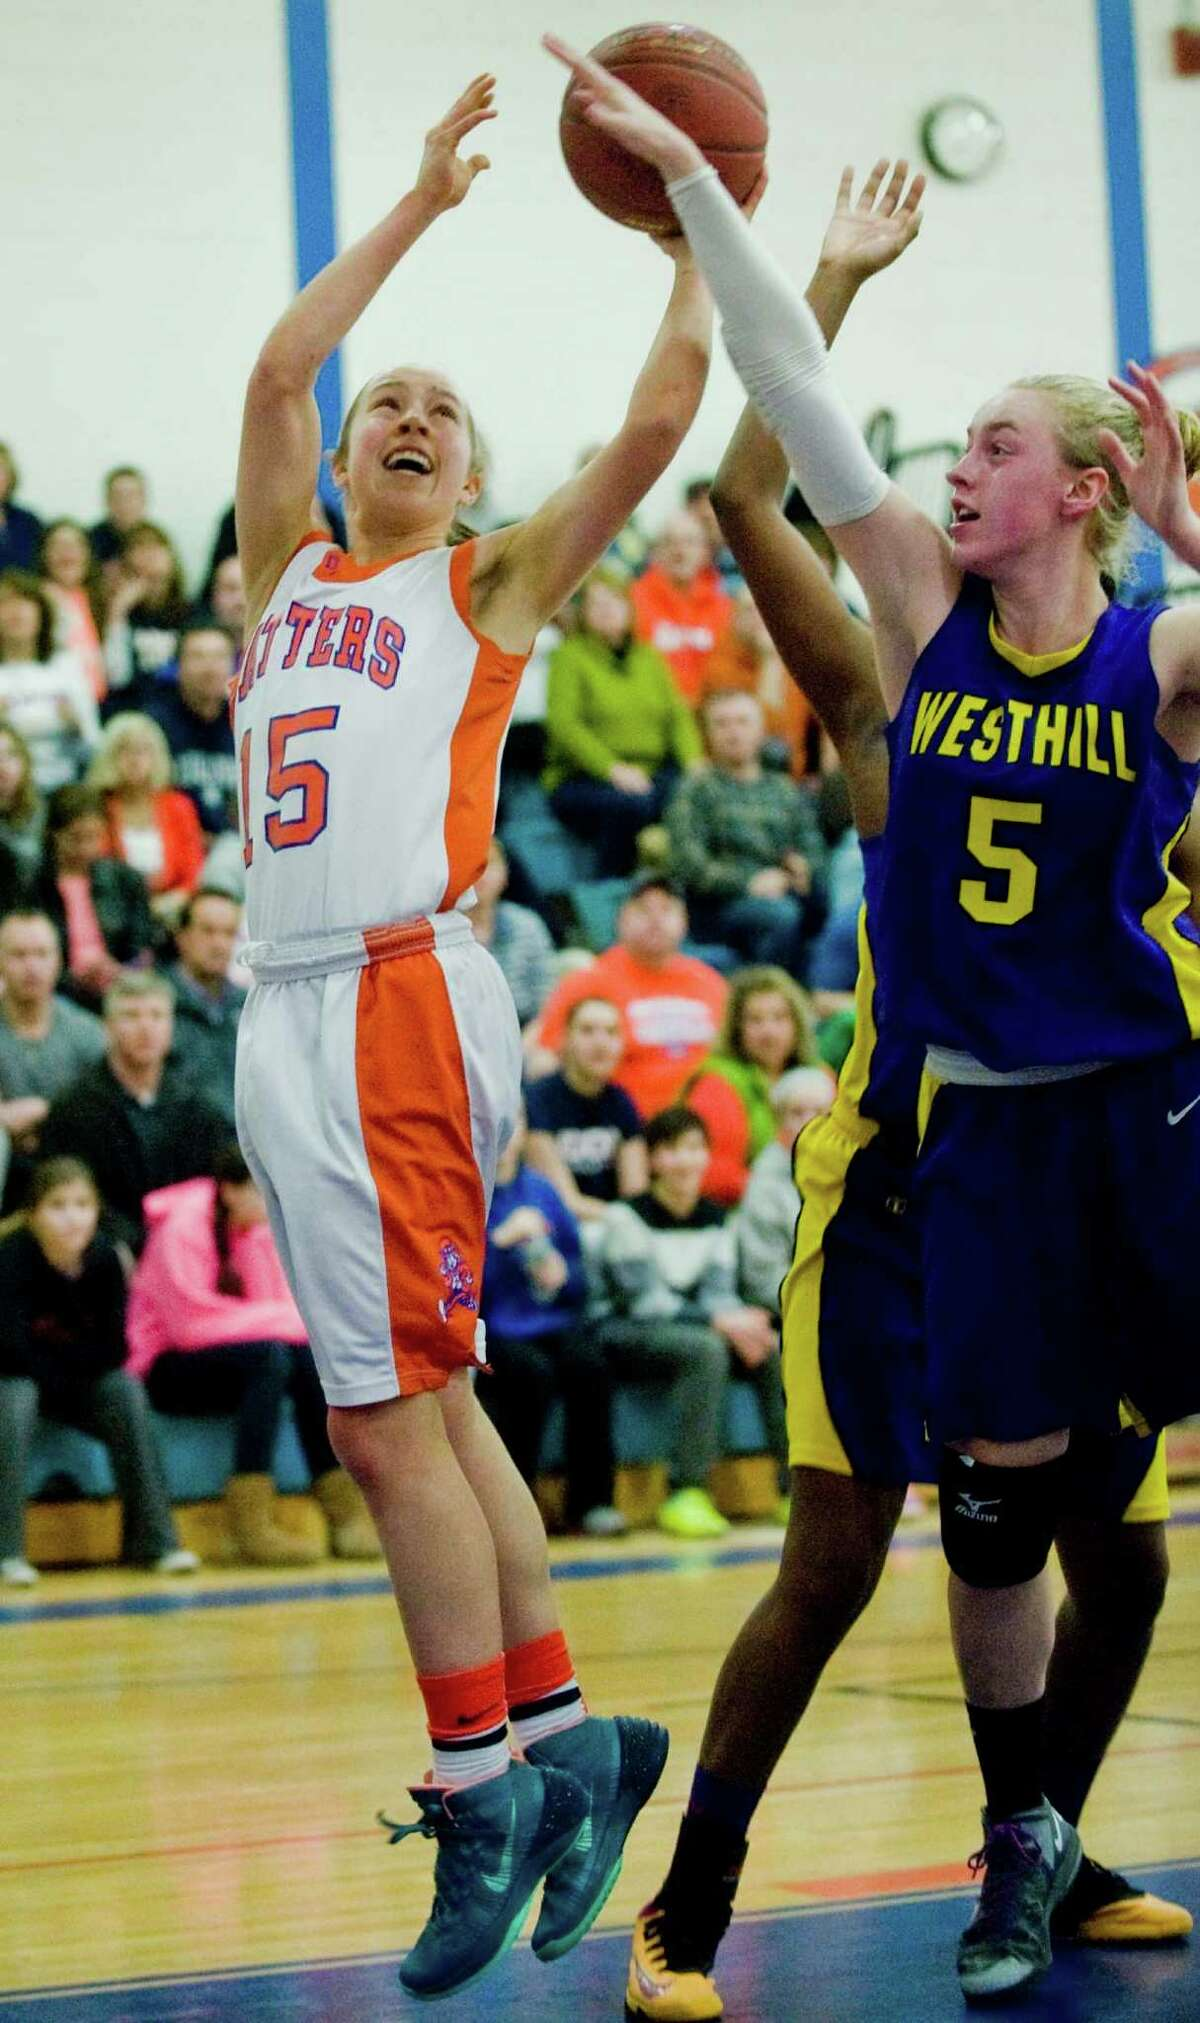 Danbury High School Guard Rebecca Gartner tries to get off a shot as Westhill High School Forward Steph Roones tries to block the shot during the Class LL Girls Basketball Quarterfinals against Westhill High School, played at Danbury. Monday, March 10, 2014